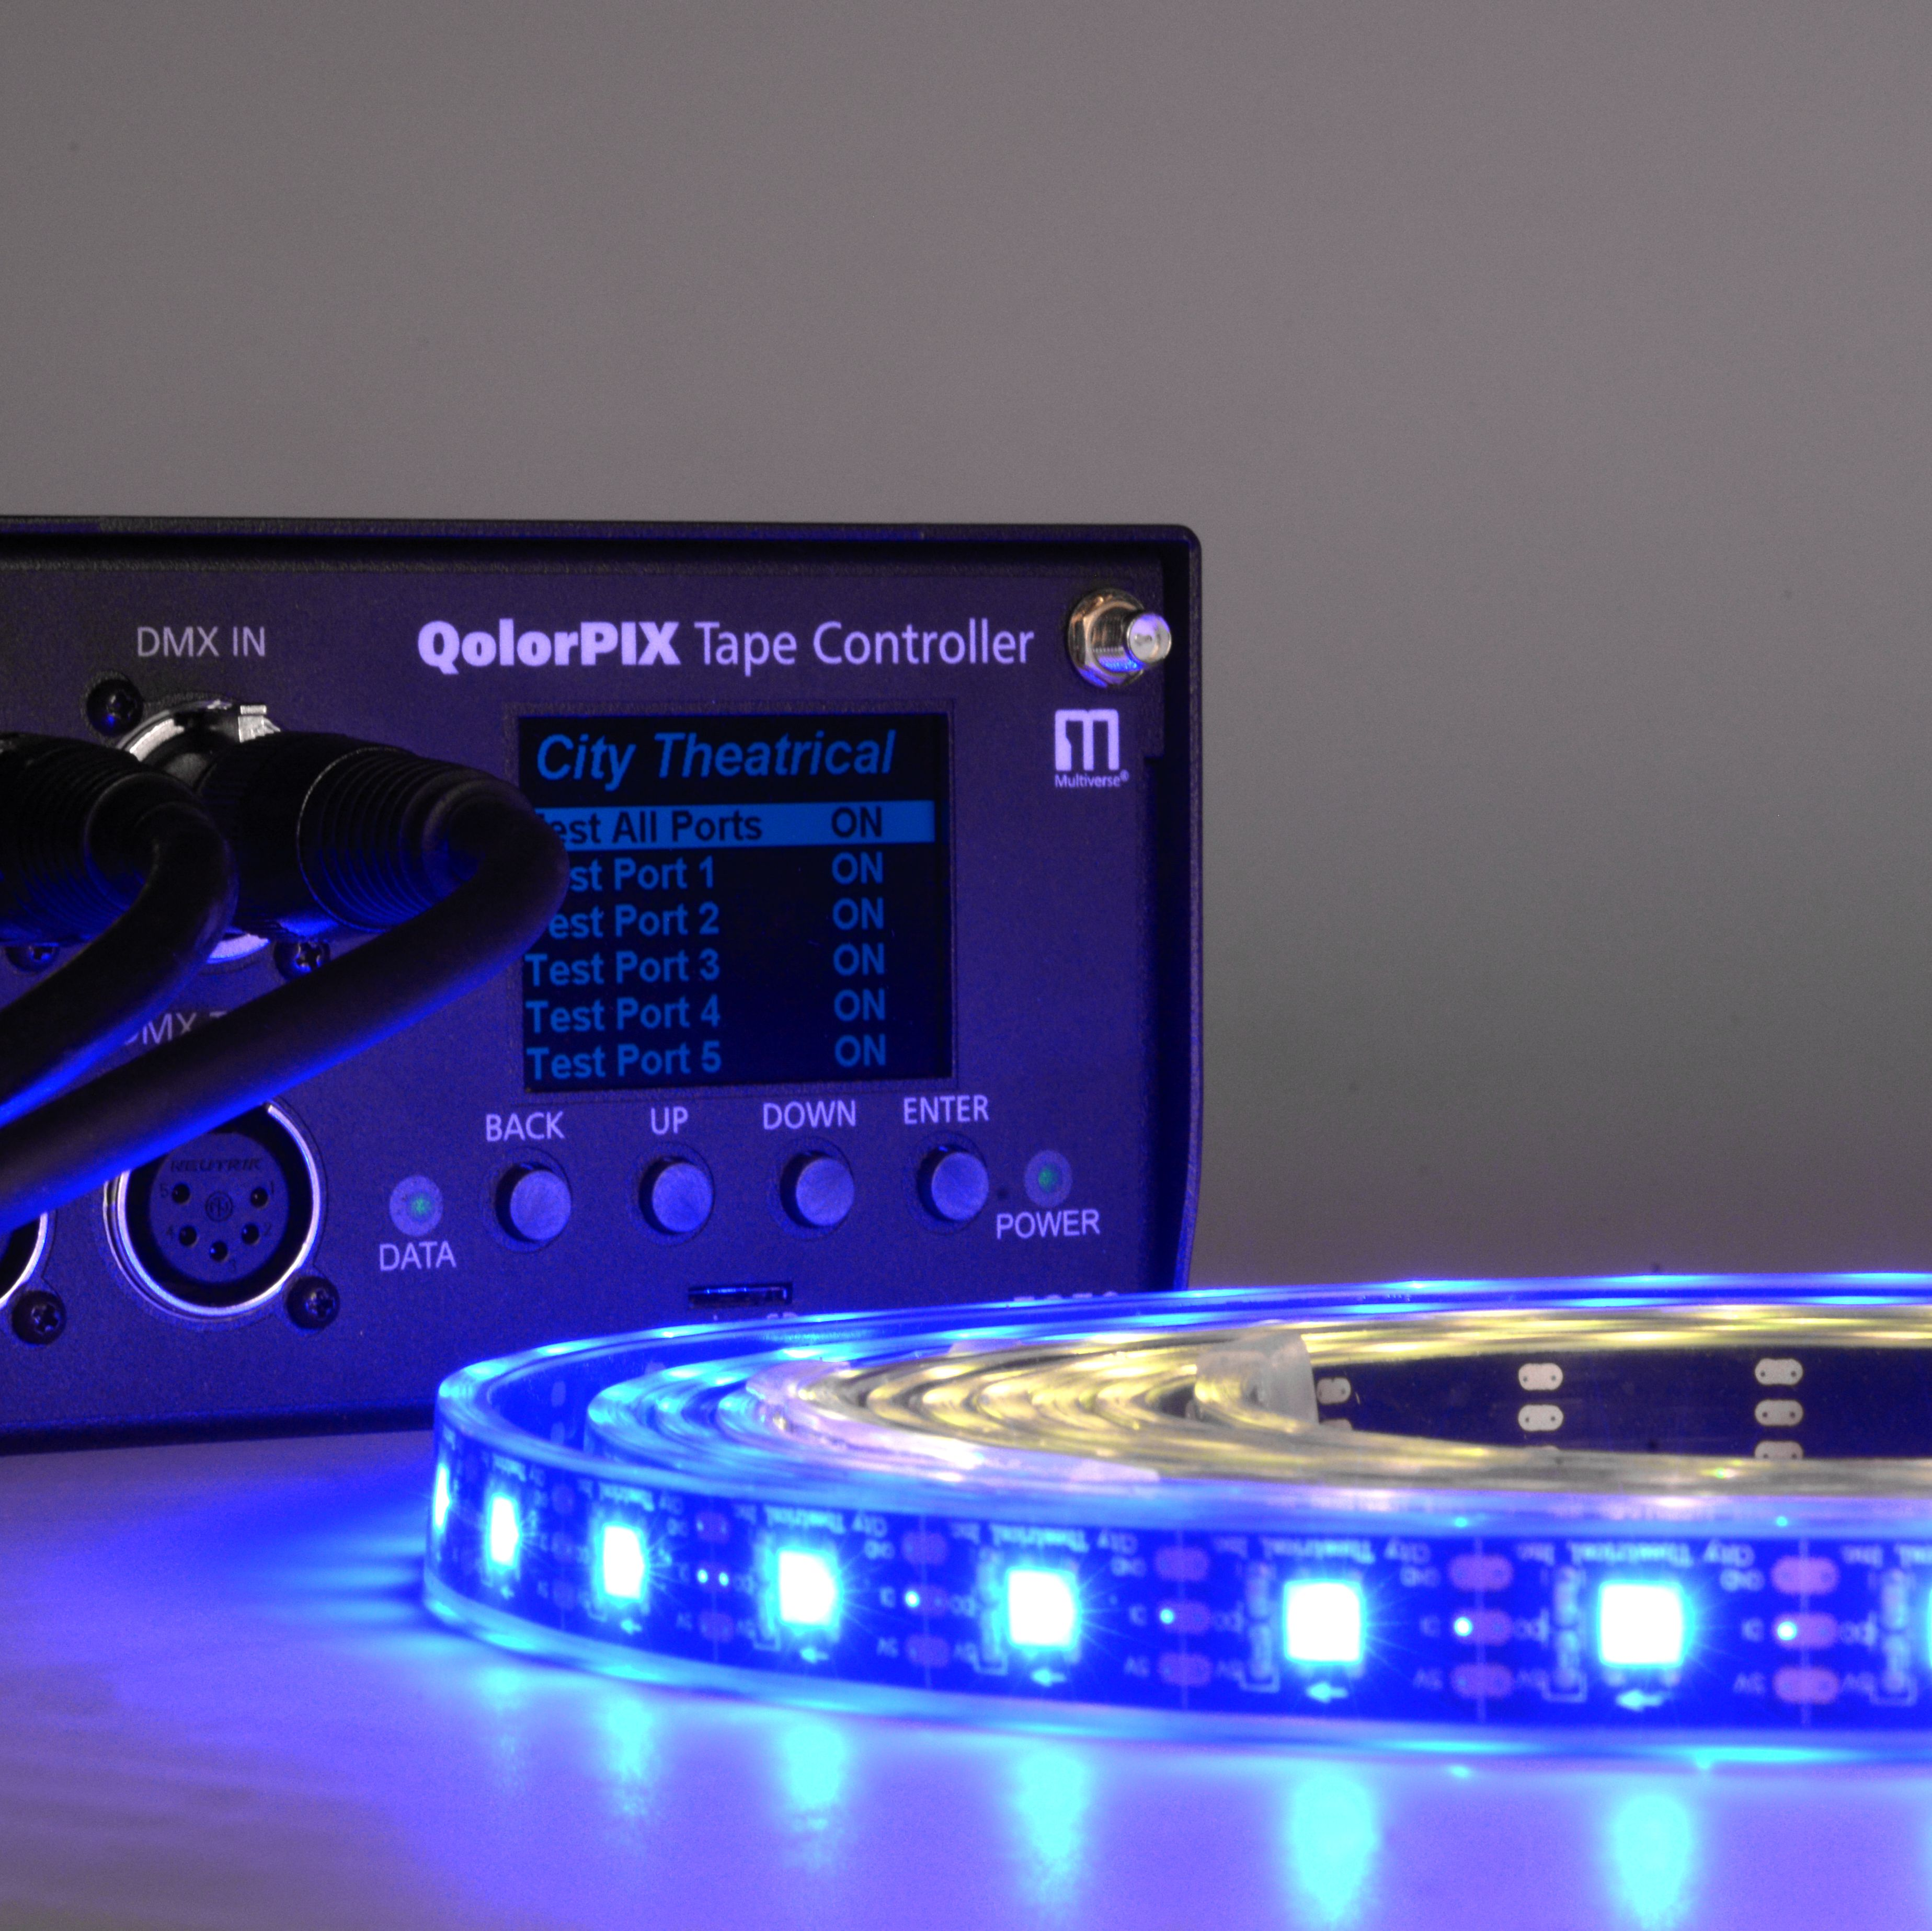 QolorPIX Pixel Controlled LED Tape and Tape Controller